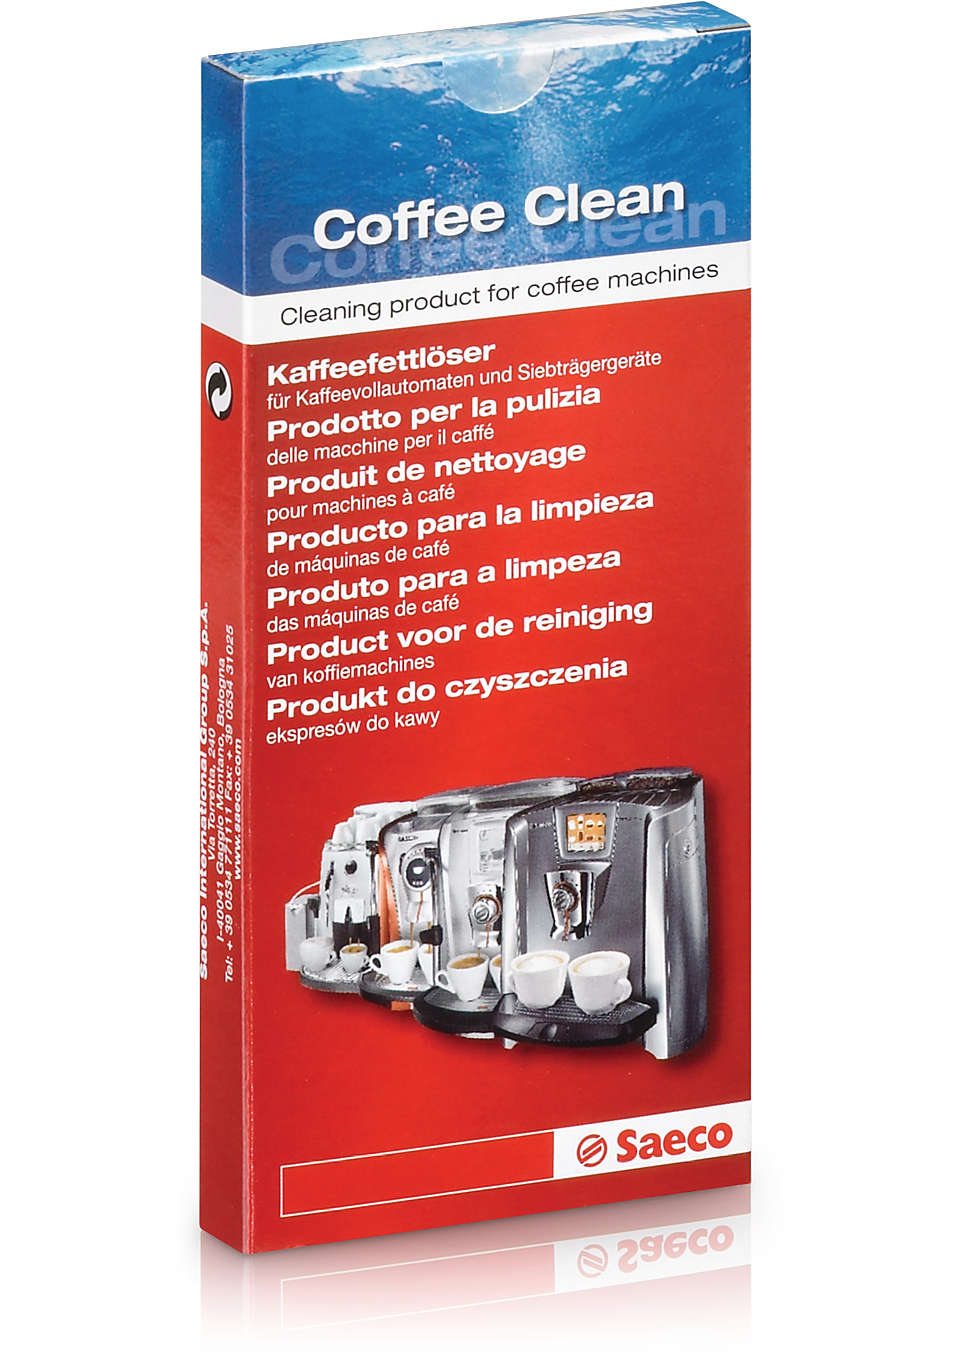 Coffee Clean - Cleaning product